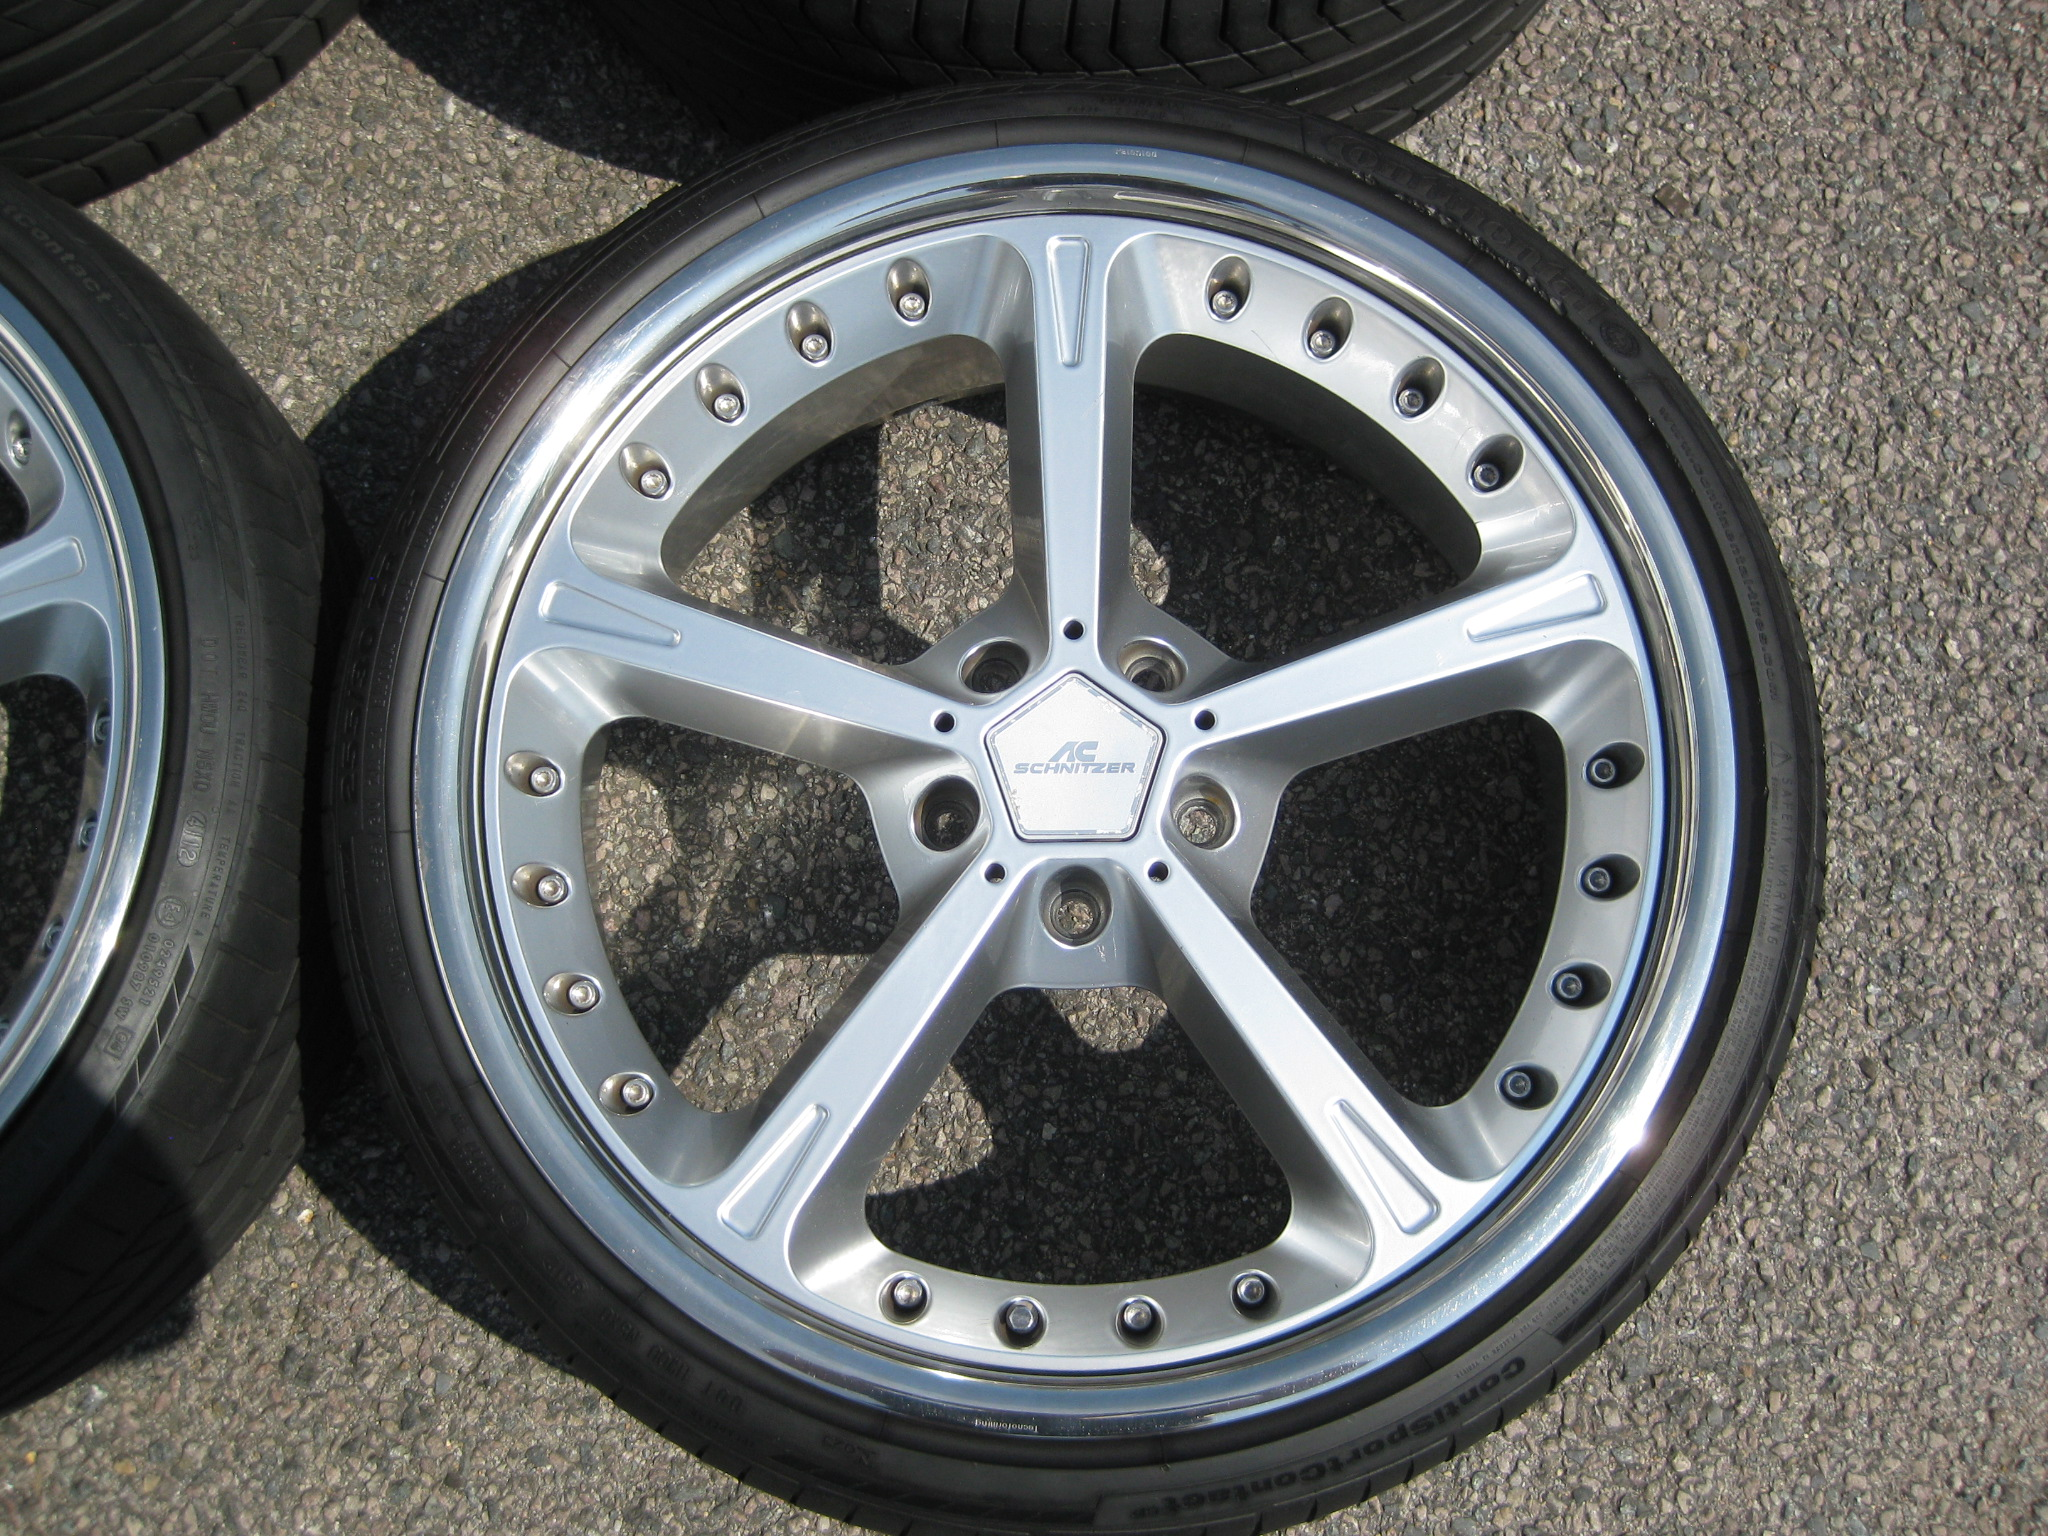 "USED 21"" GENUINE AC SCHNITZER TYPE IV RACING ALLOYS,VG ORIGINAL CONDITION INC EXCELLENT CONTINENTAL TYRES"